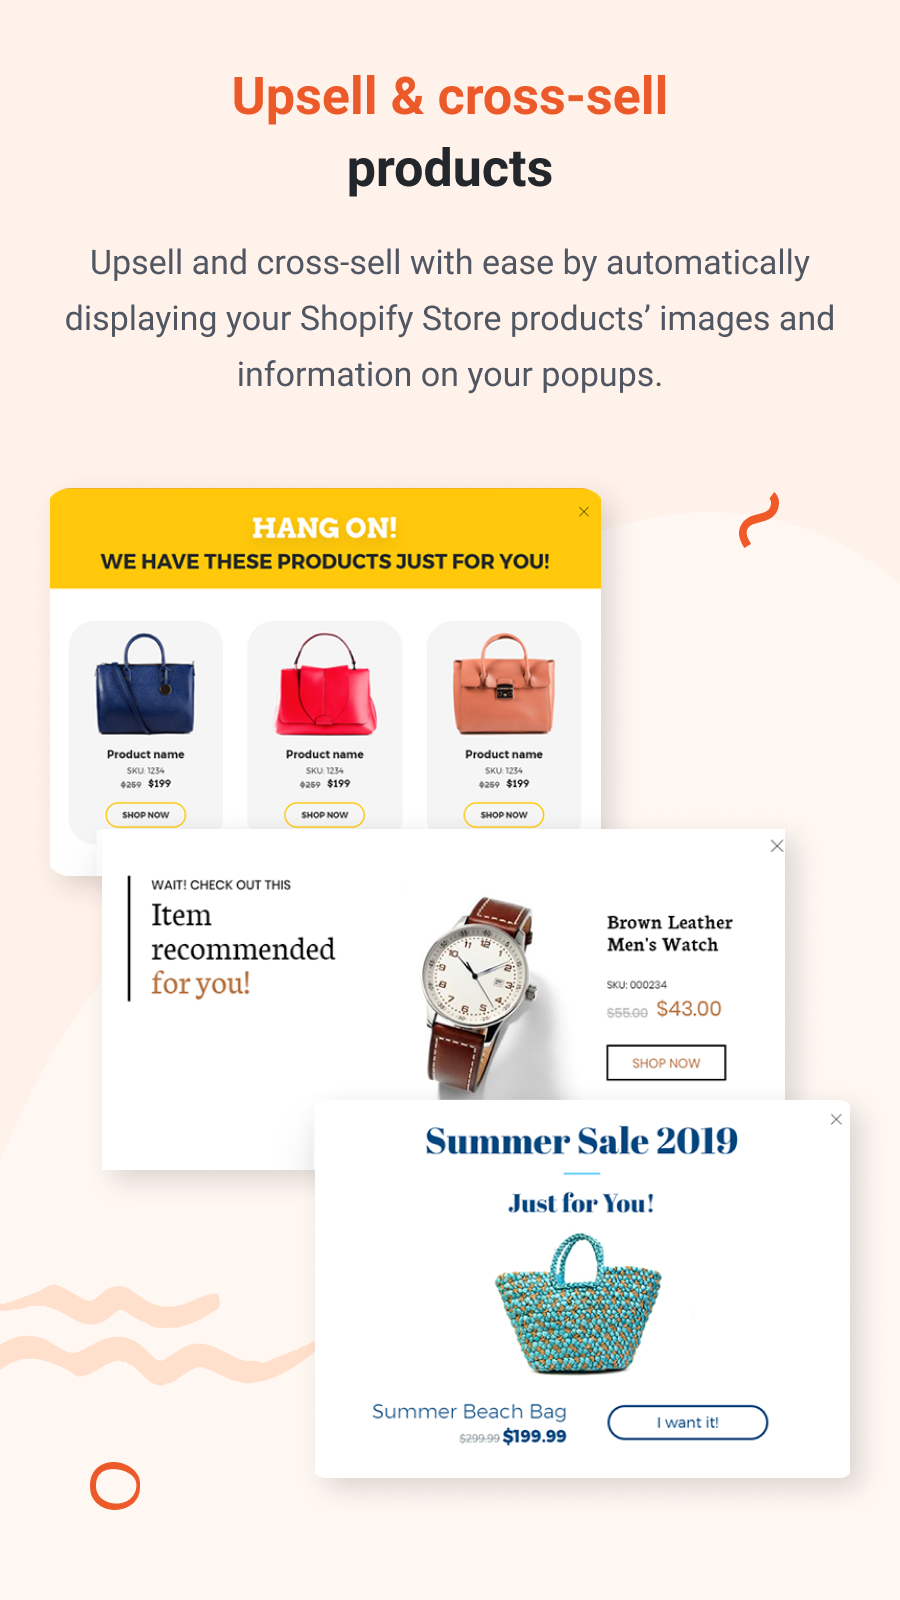 Upsell and cross-sell products.